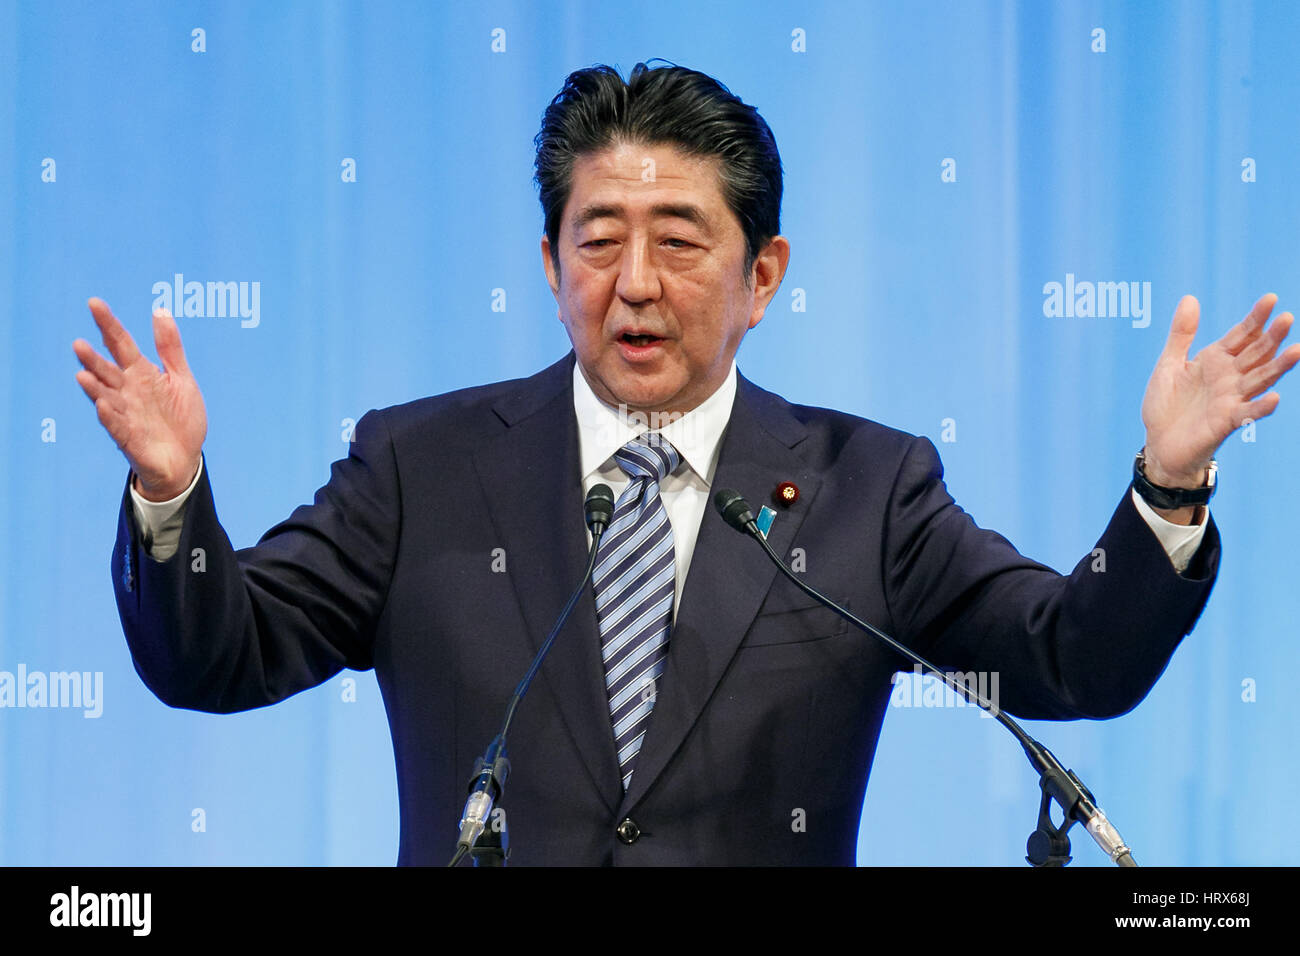 Prime Minister Shinzo Abe makes a speech during the Liberal-Democratic Party's national convention on March - Stock Image